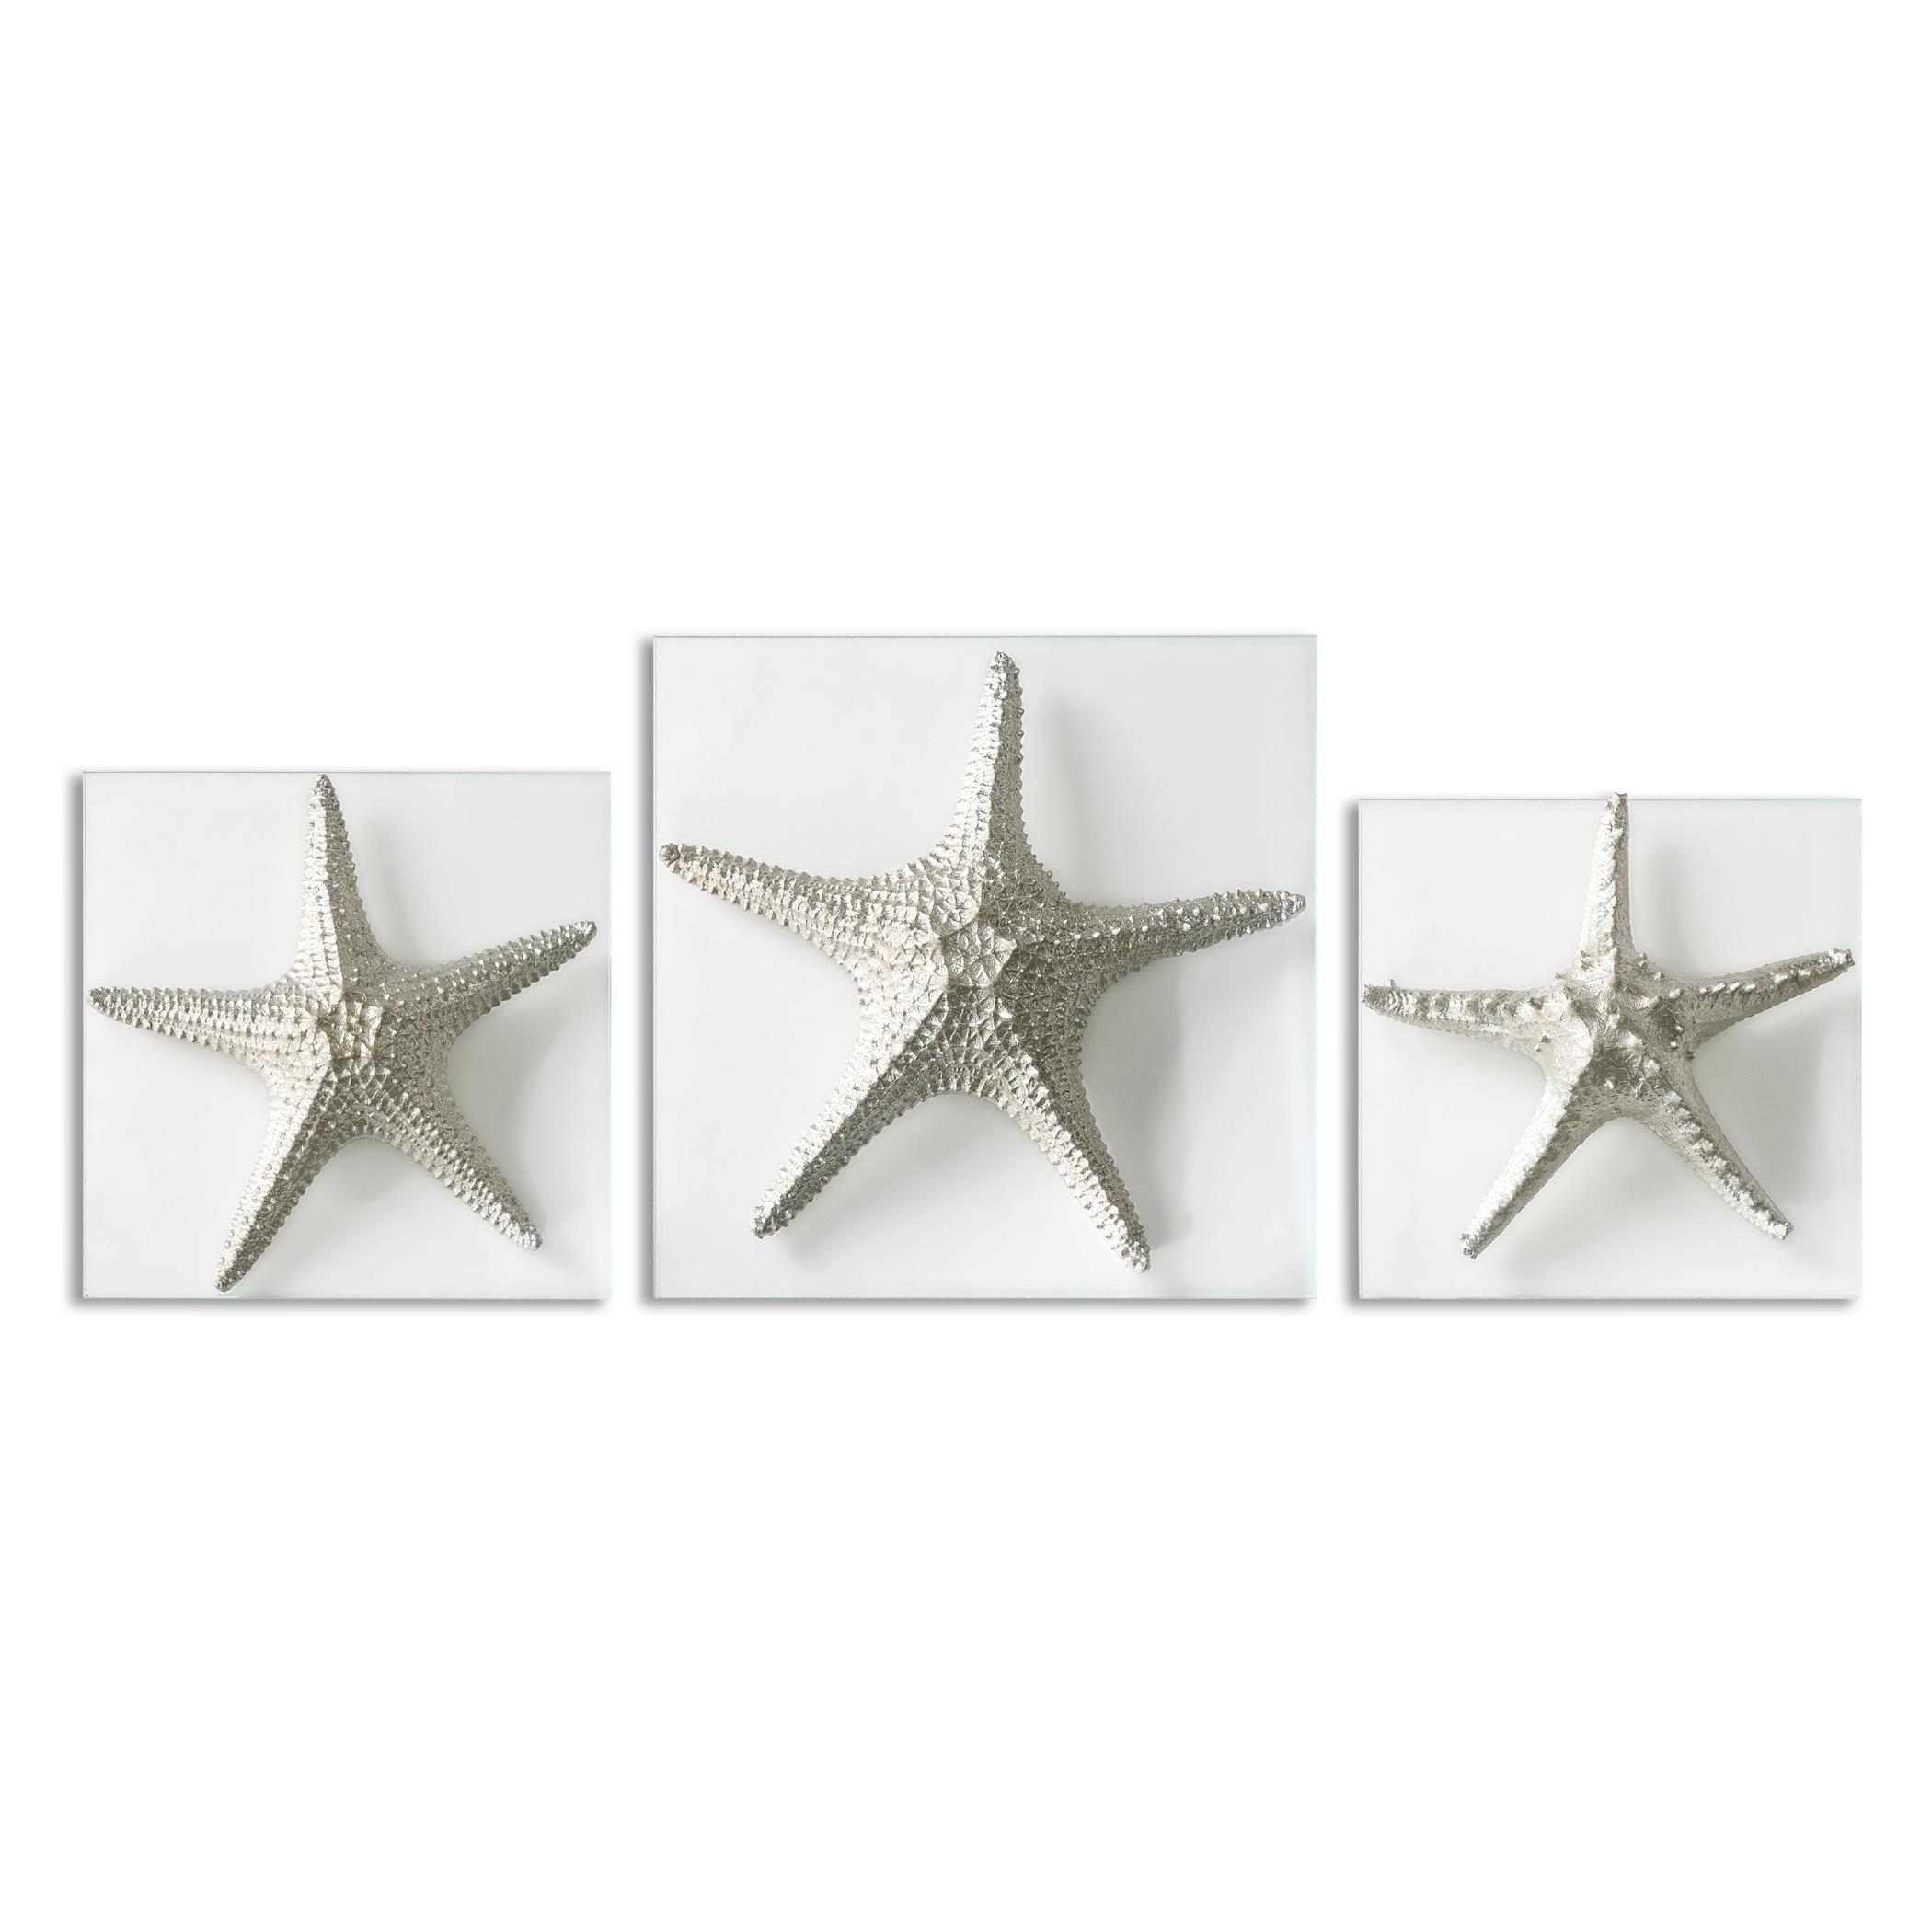 Uttermost alternative wall decor silver starfish wall art s3 uttermost alternative wall decor silver starfish wall art s3 item number amipublicfo Gallery